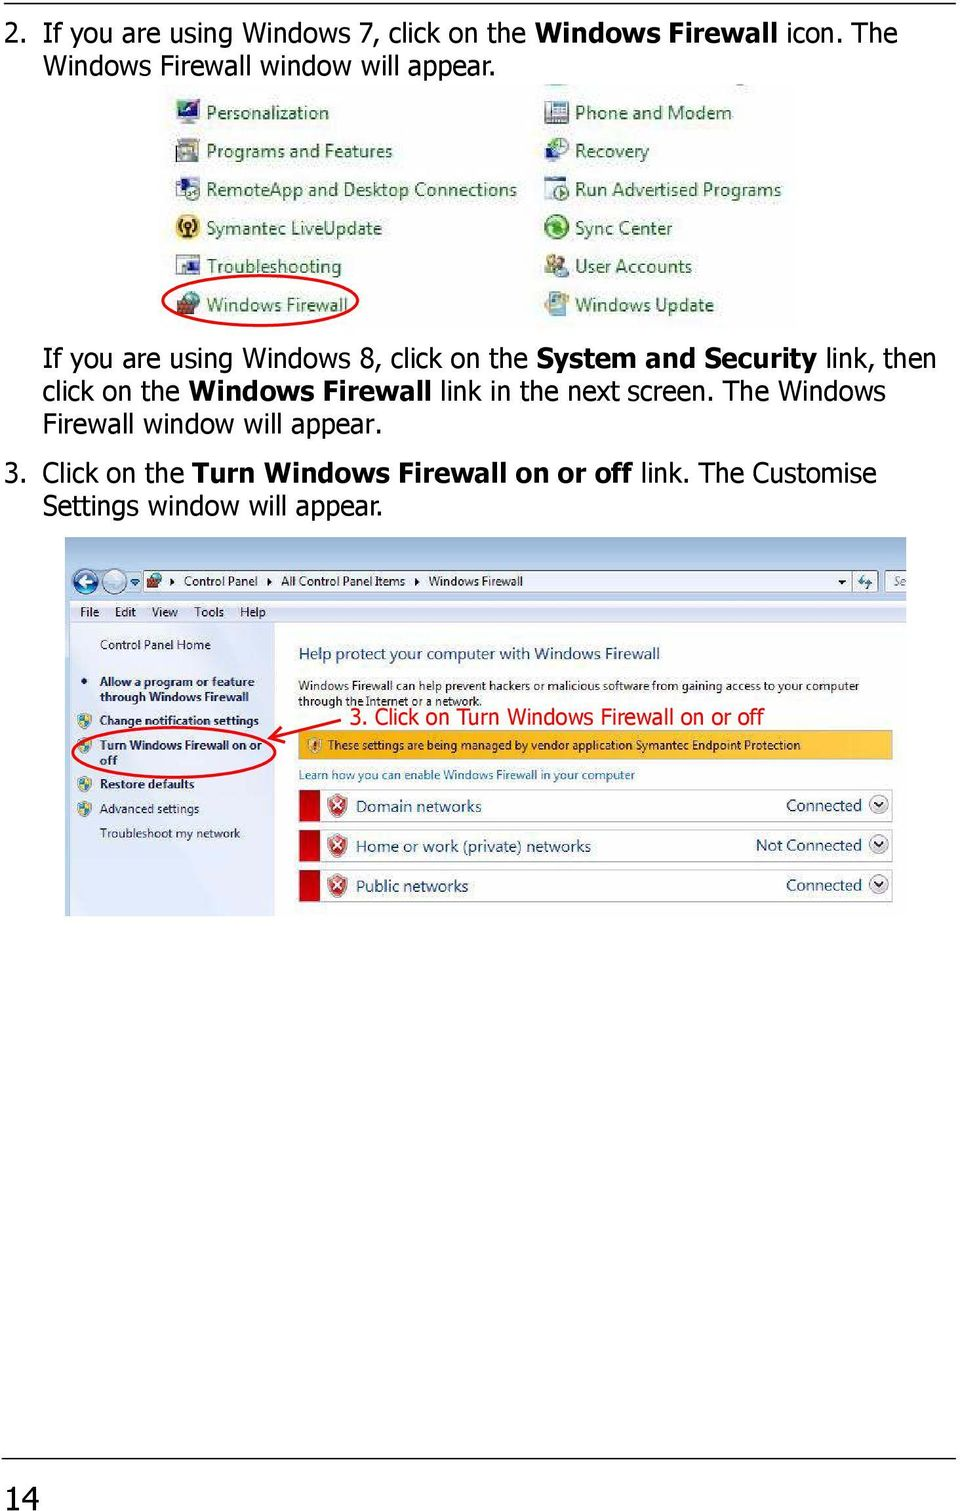 If you are using Windows 8, click on the System and Security link, then click on the Windows Firewall